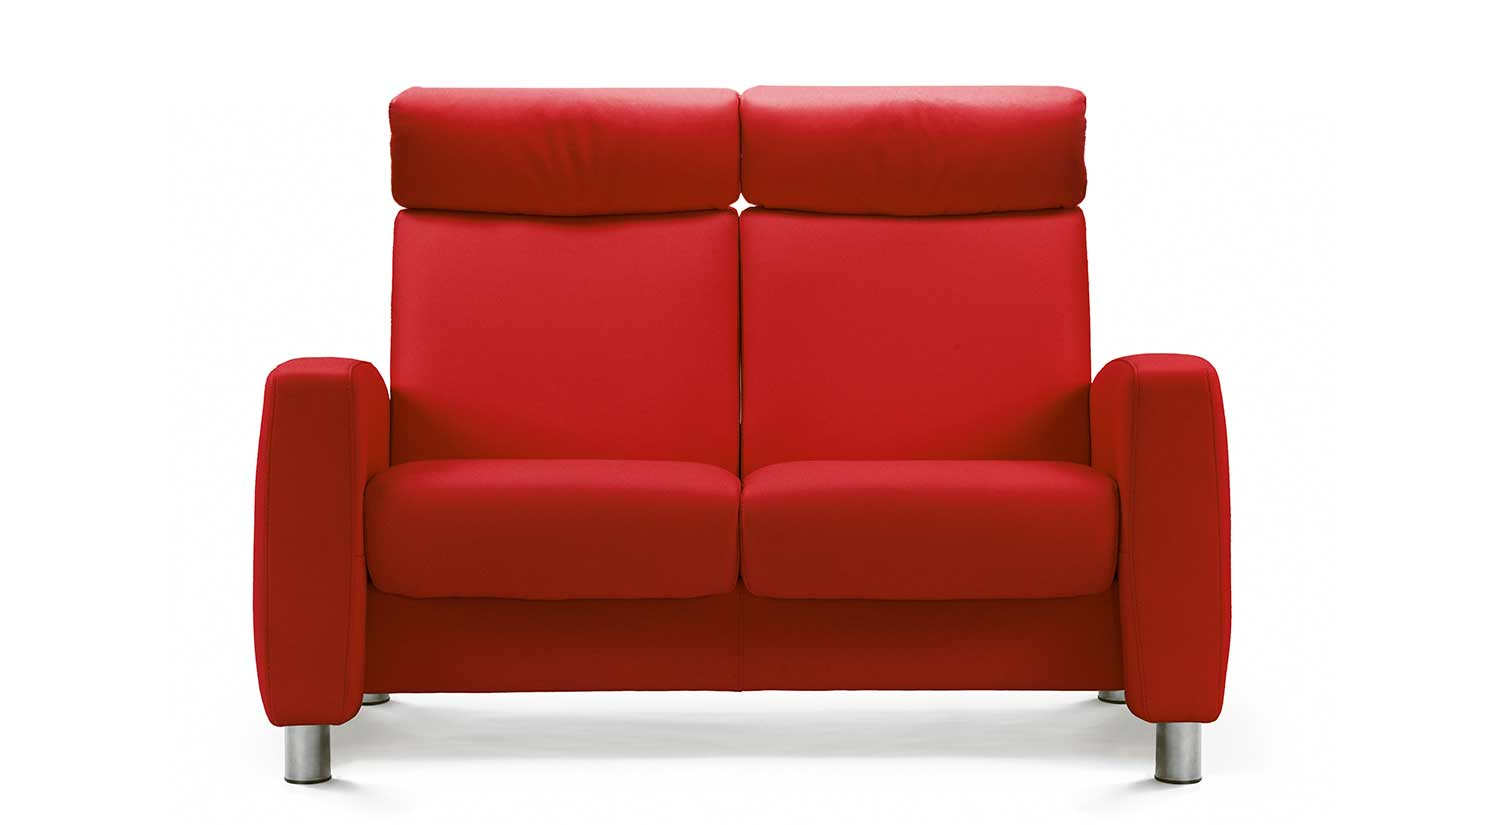 sofas guide the available popular to tufted most styles benchsofas loveseat back a high bench ideas